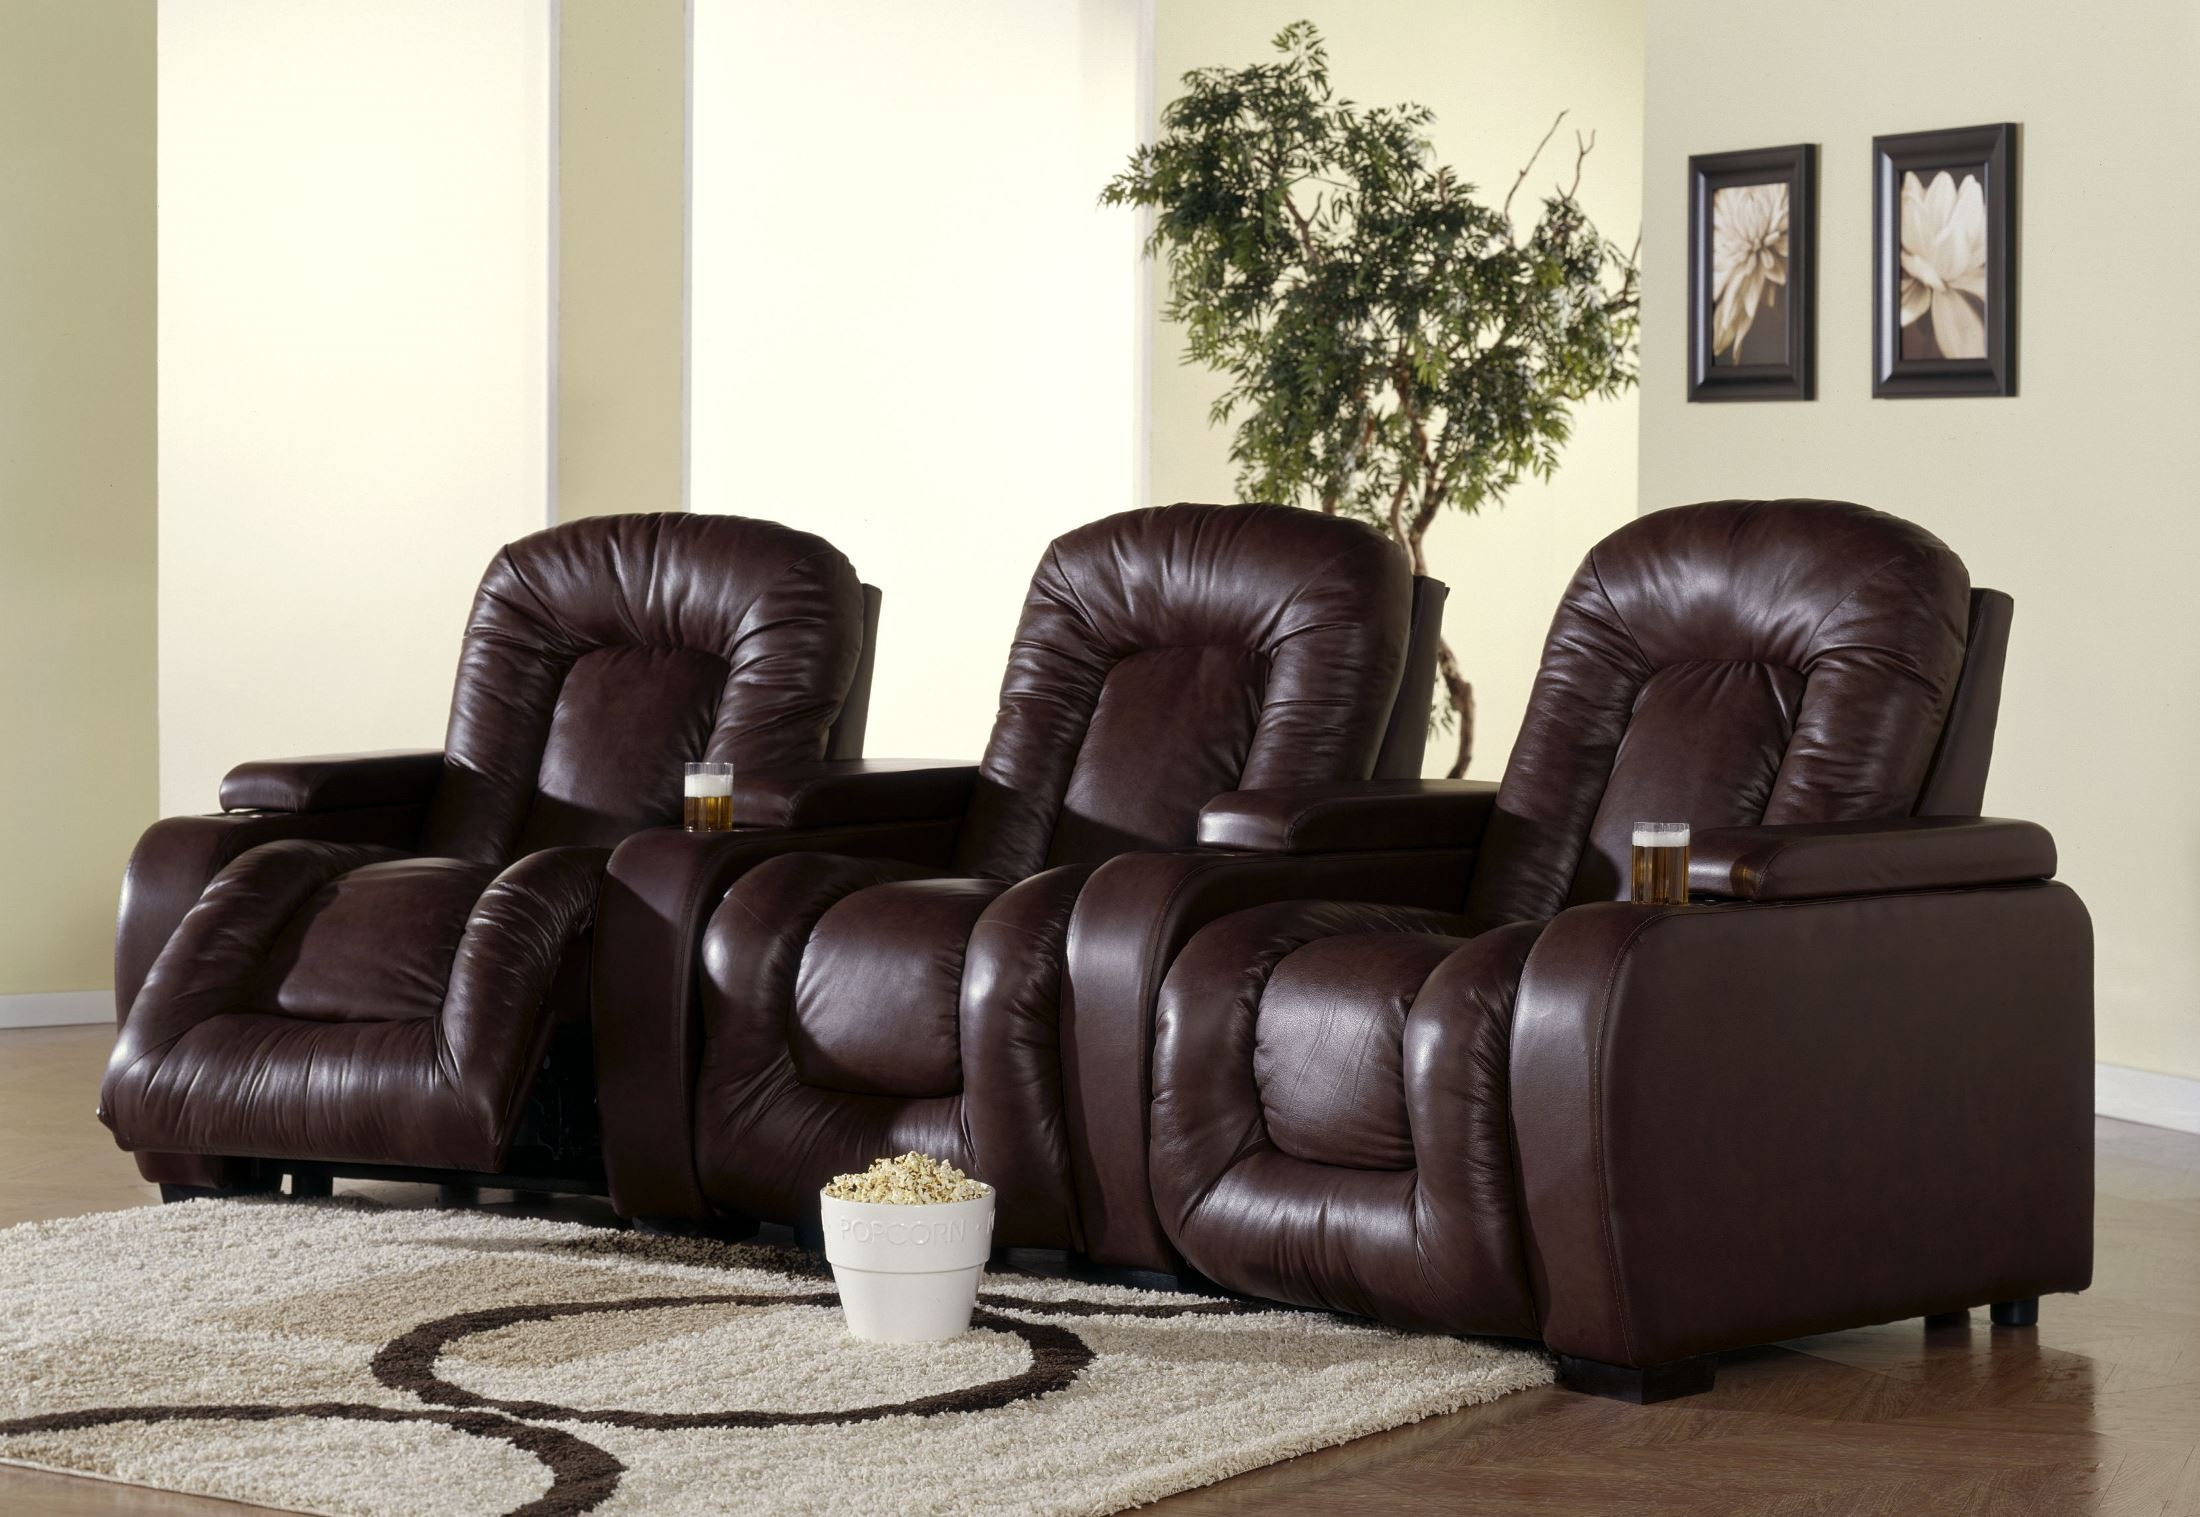 recliner chairs movie theater elegant chair covers & event decor rhumba bonded leather home theatre seating psr 41918